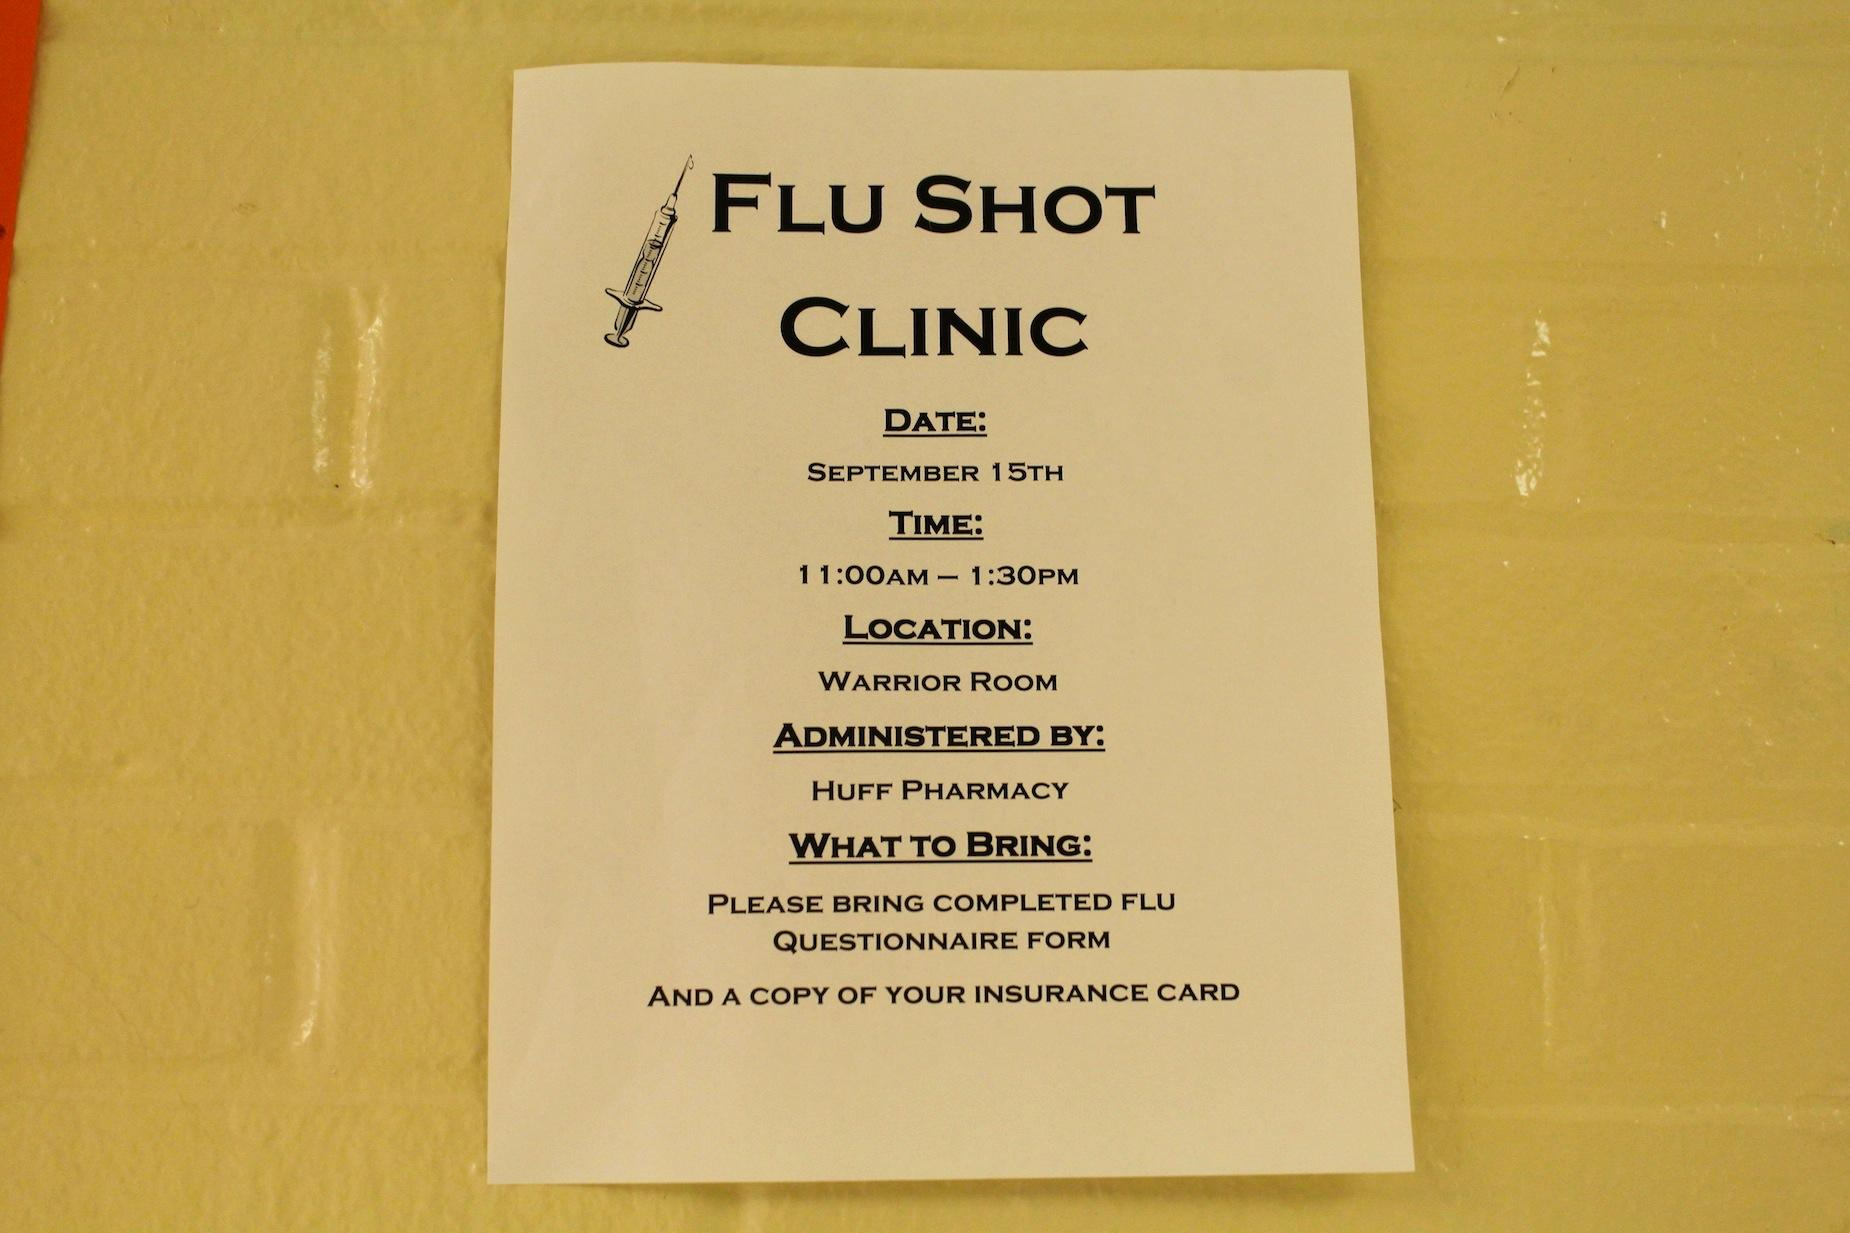 With flu season rapidly approaching, Huff Pharmacy will administer vaccinations in the Warrior room on September 16. Students and faculty who wish to receive a vaccination must bring a flu questionnaire and a copy of their insurance card.